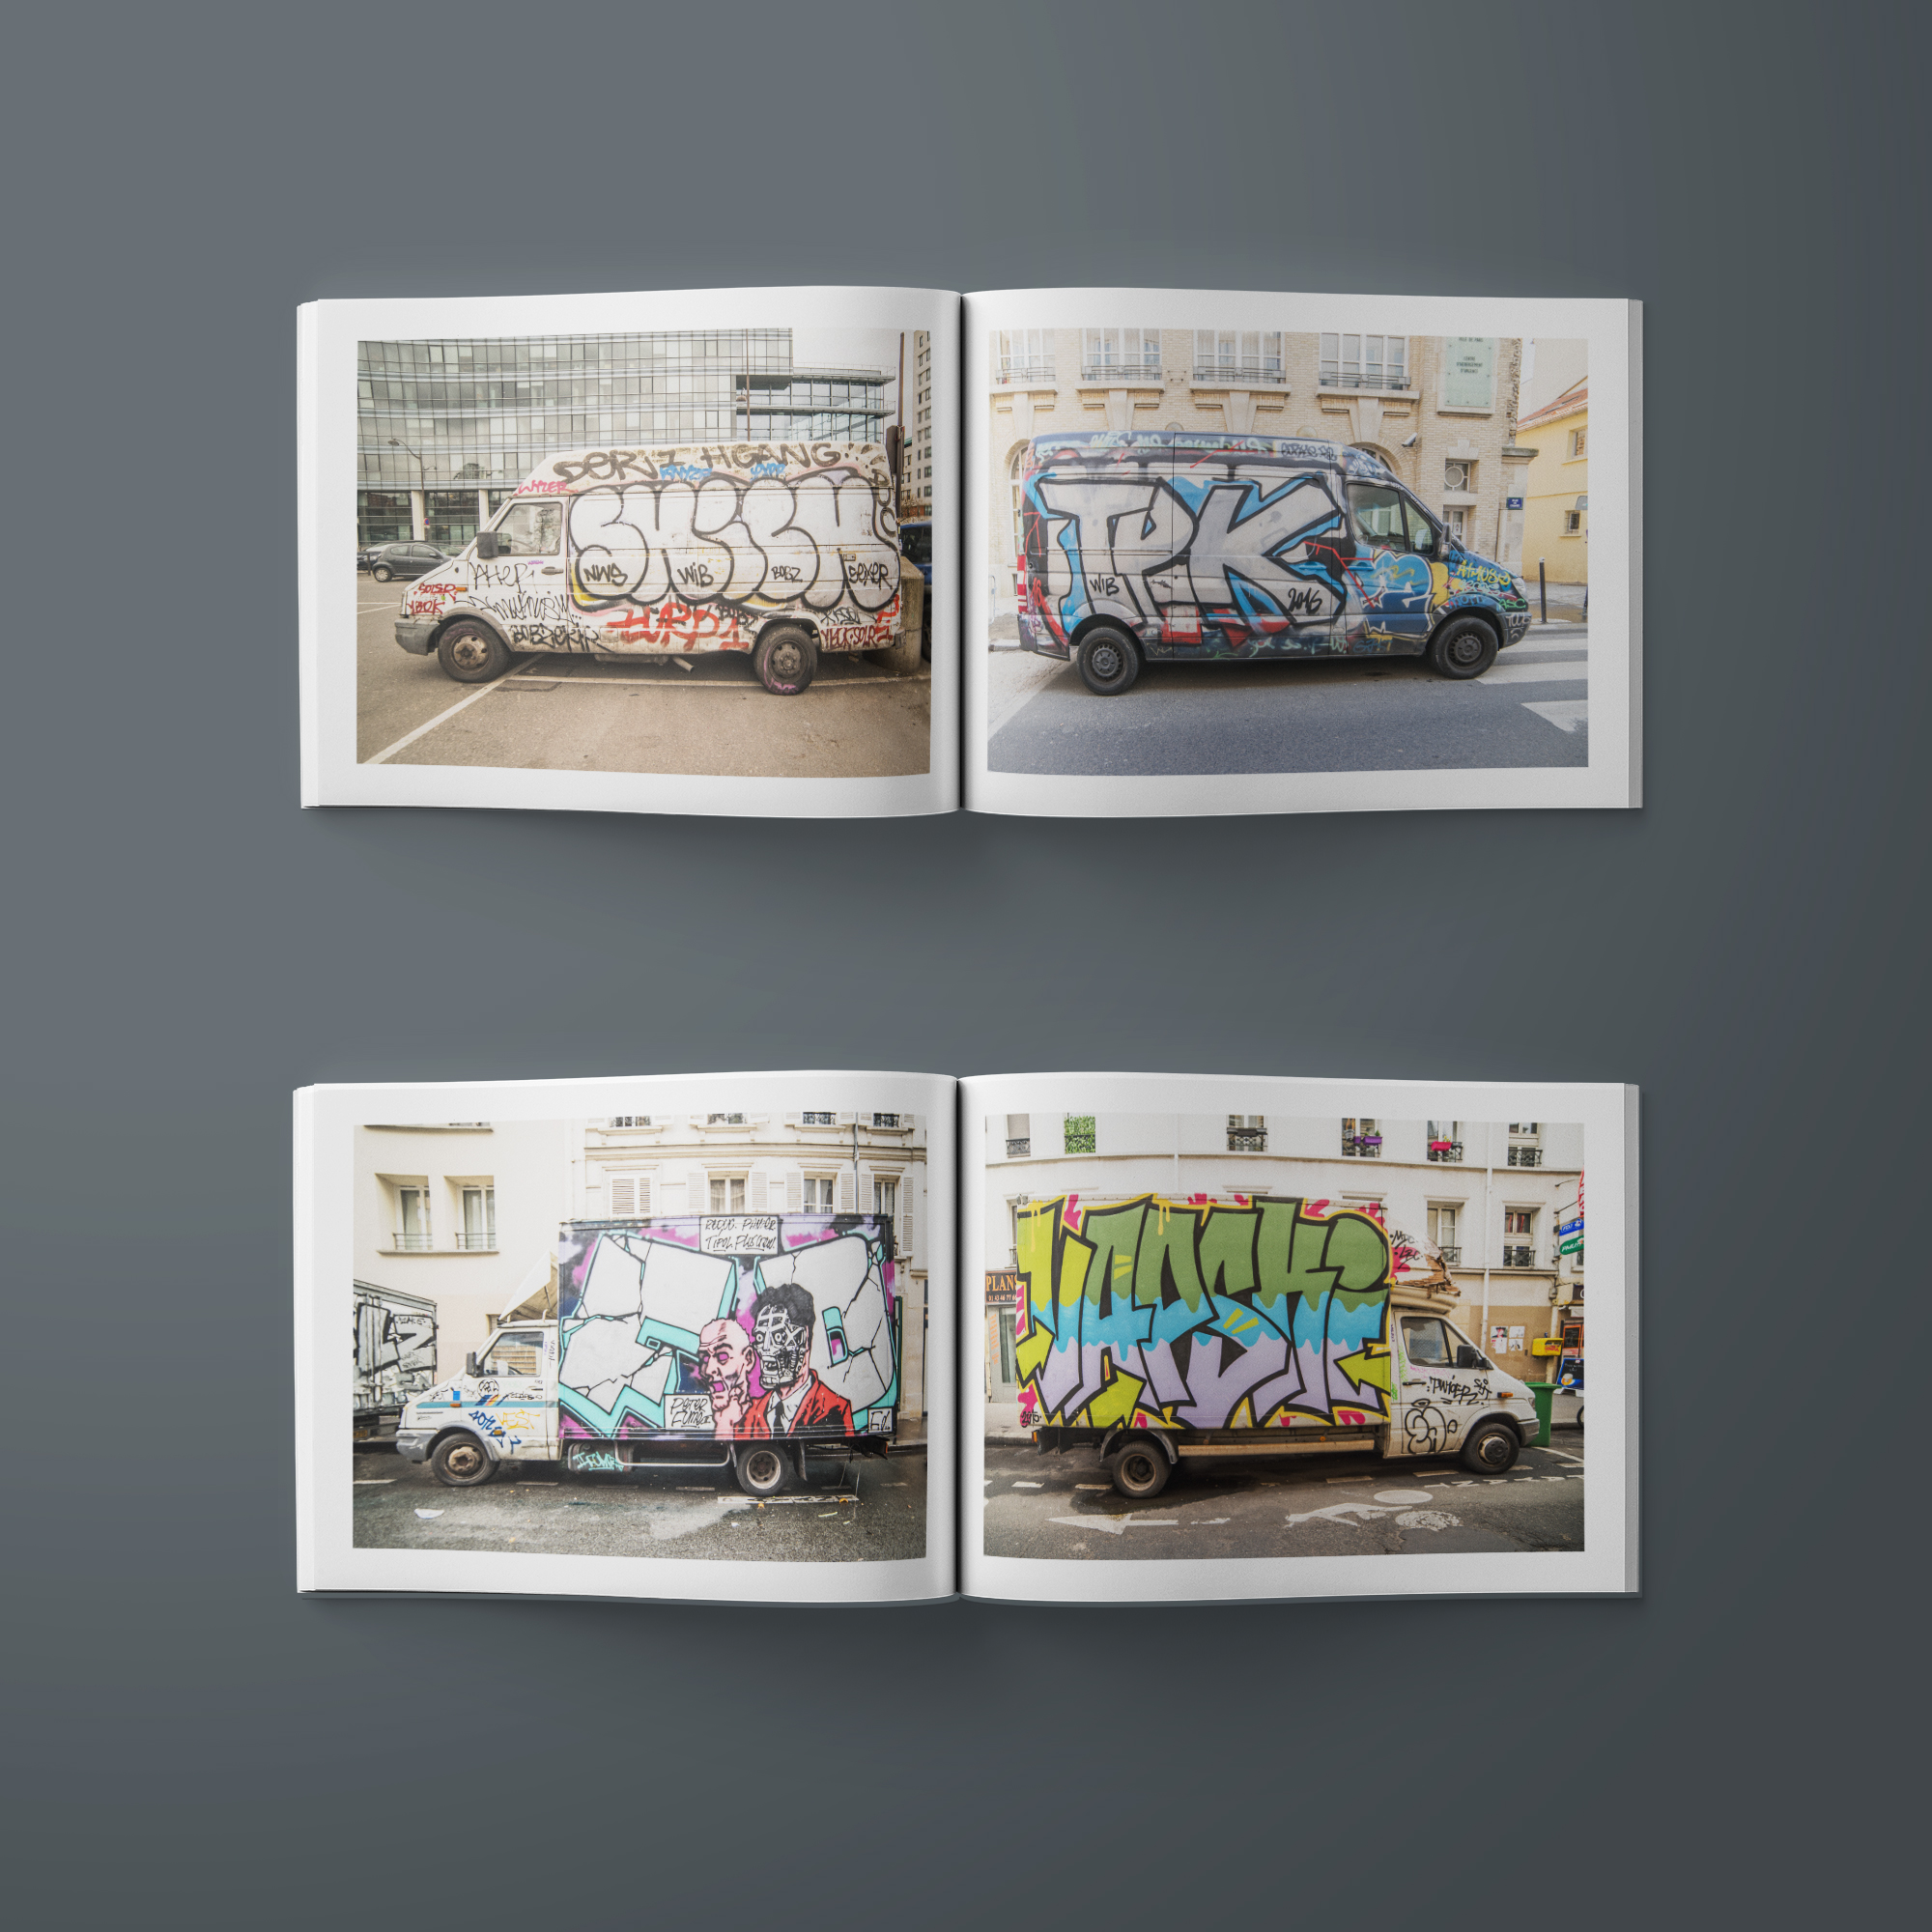 TRUCK_GRAFFICH_GRAFFITI_ON_PARISIAN_TRUCKS_BOOK_GOOD_GUY_BORIS_INSIDE_PAGE-A2